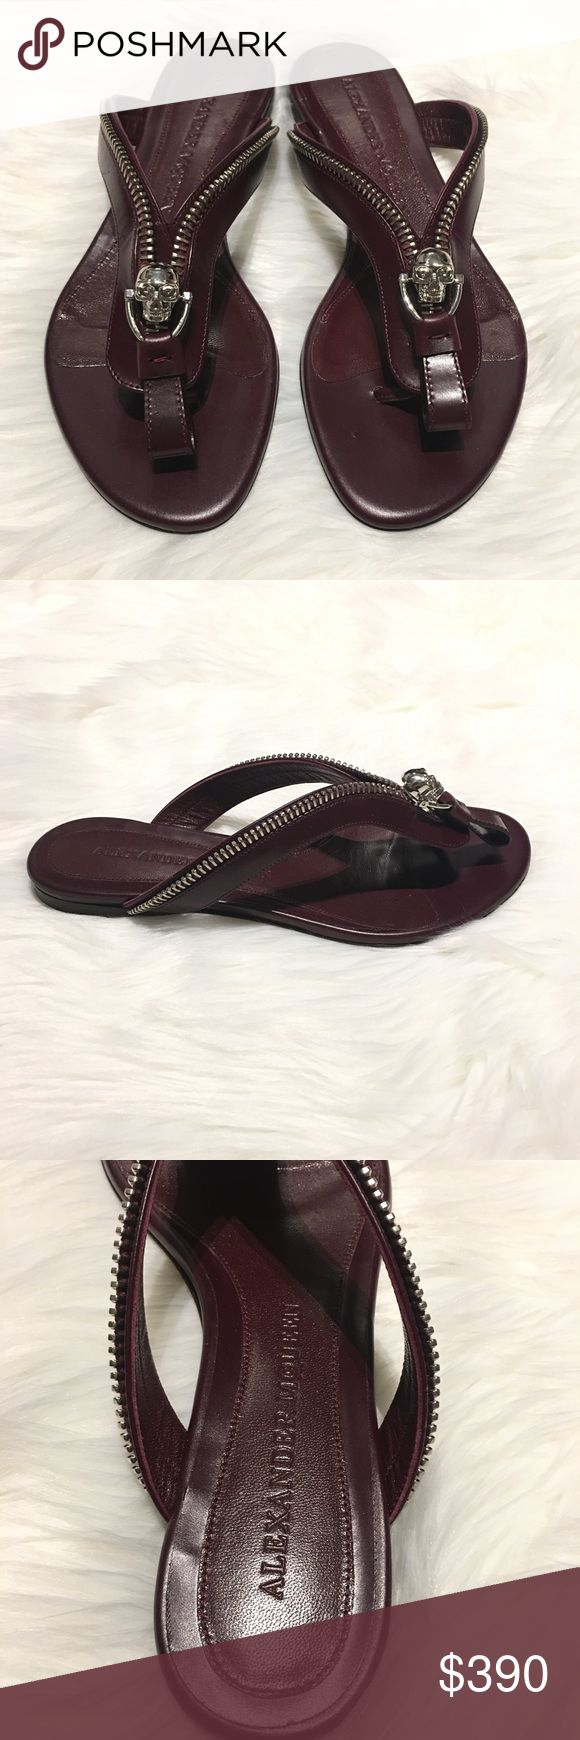 Alexander McQueen Skull Flip Flops 38 1/2 (7.5 -8) Alexander McQueen Flip Flops Size: 38 1/2  but fit like a 7.5 or 8 - Color: Maroon - purchases these from Nordstrom sale they have minor scuffs on the soles from being on the rack (see photos) I do not have the box. Skull with Zipper design. Alexander McQueen Shoes Sandals